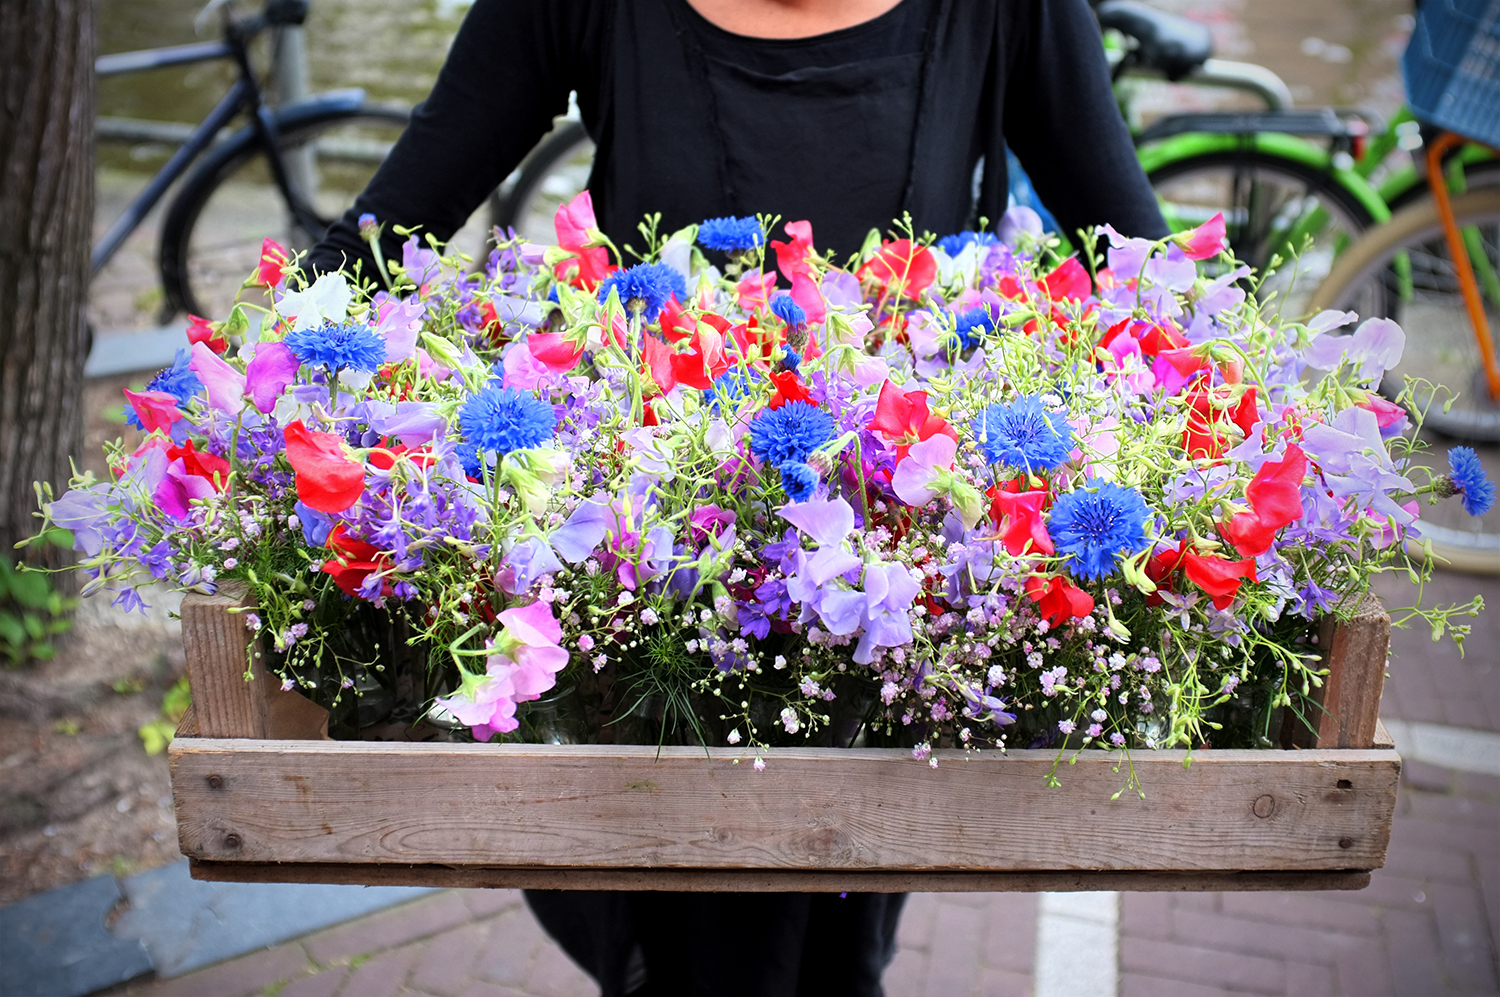 Seasonal flowers on the way to a special event. Image: Melissa Whelan